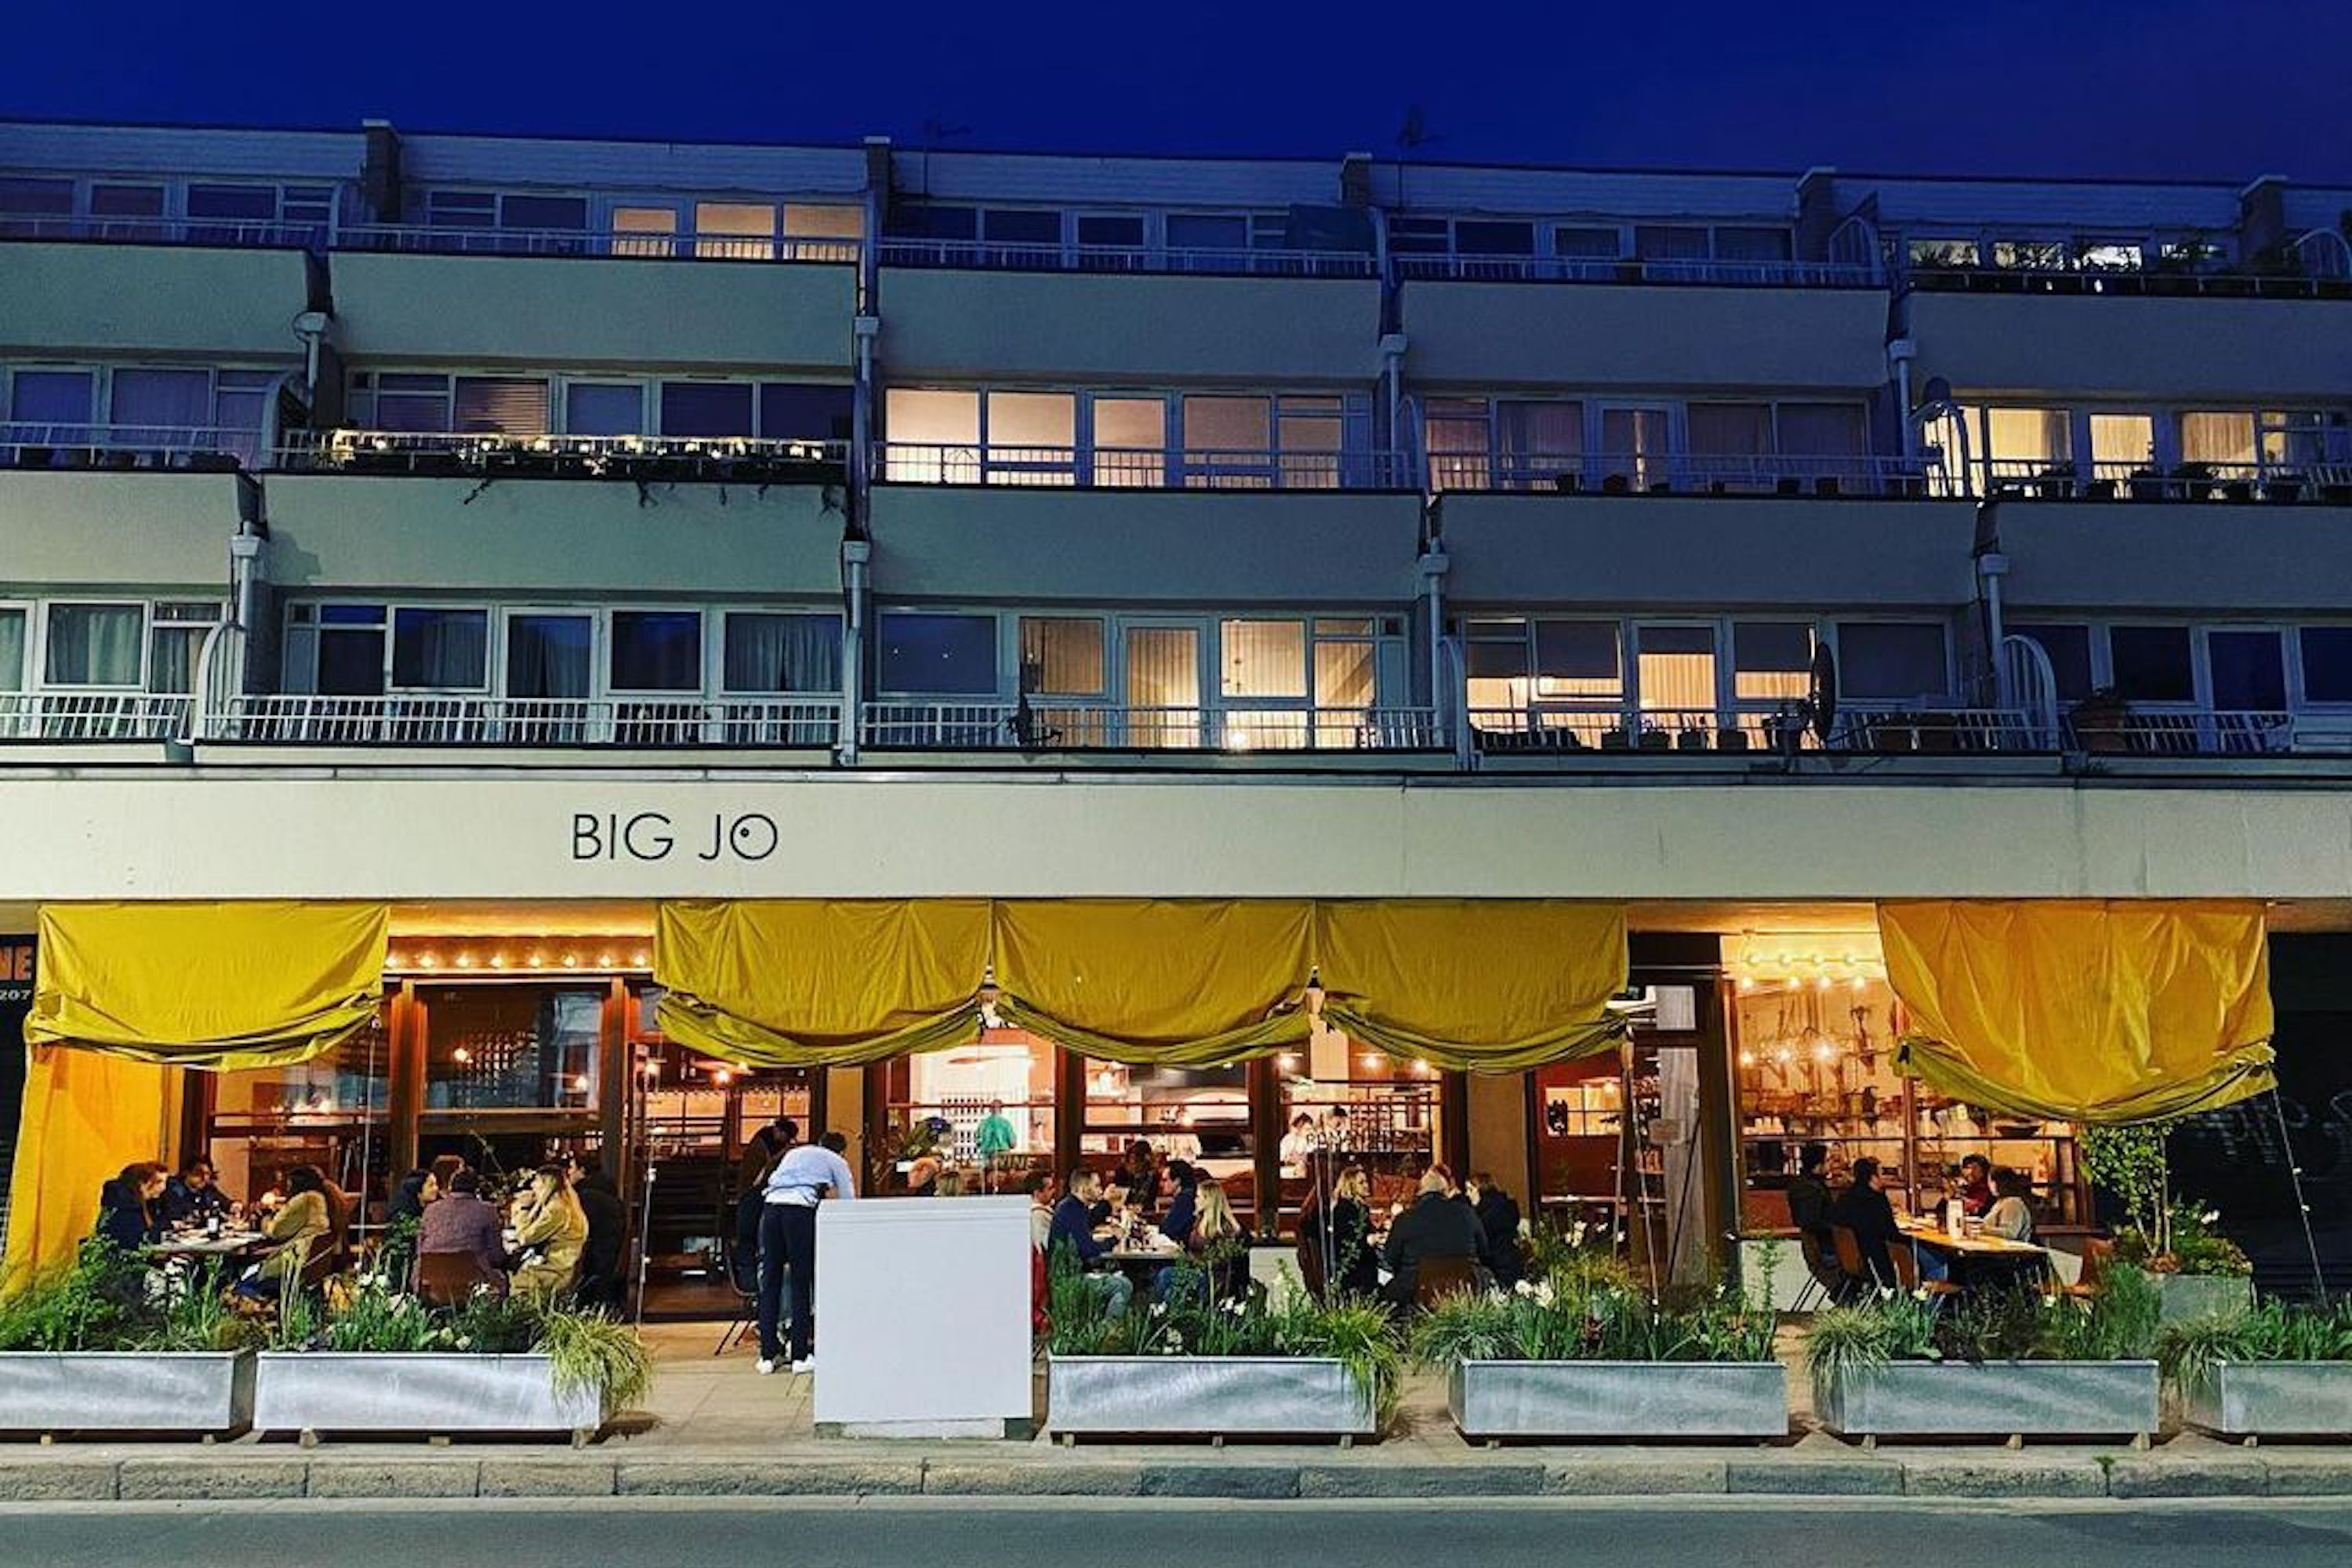 The front of Big Jo restaurant on Hornsey Road in London